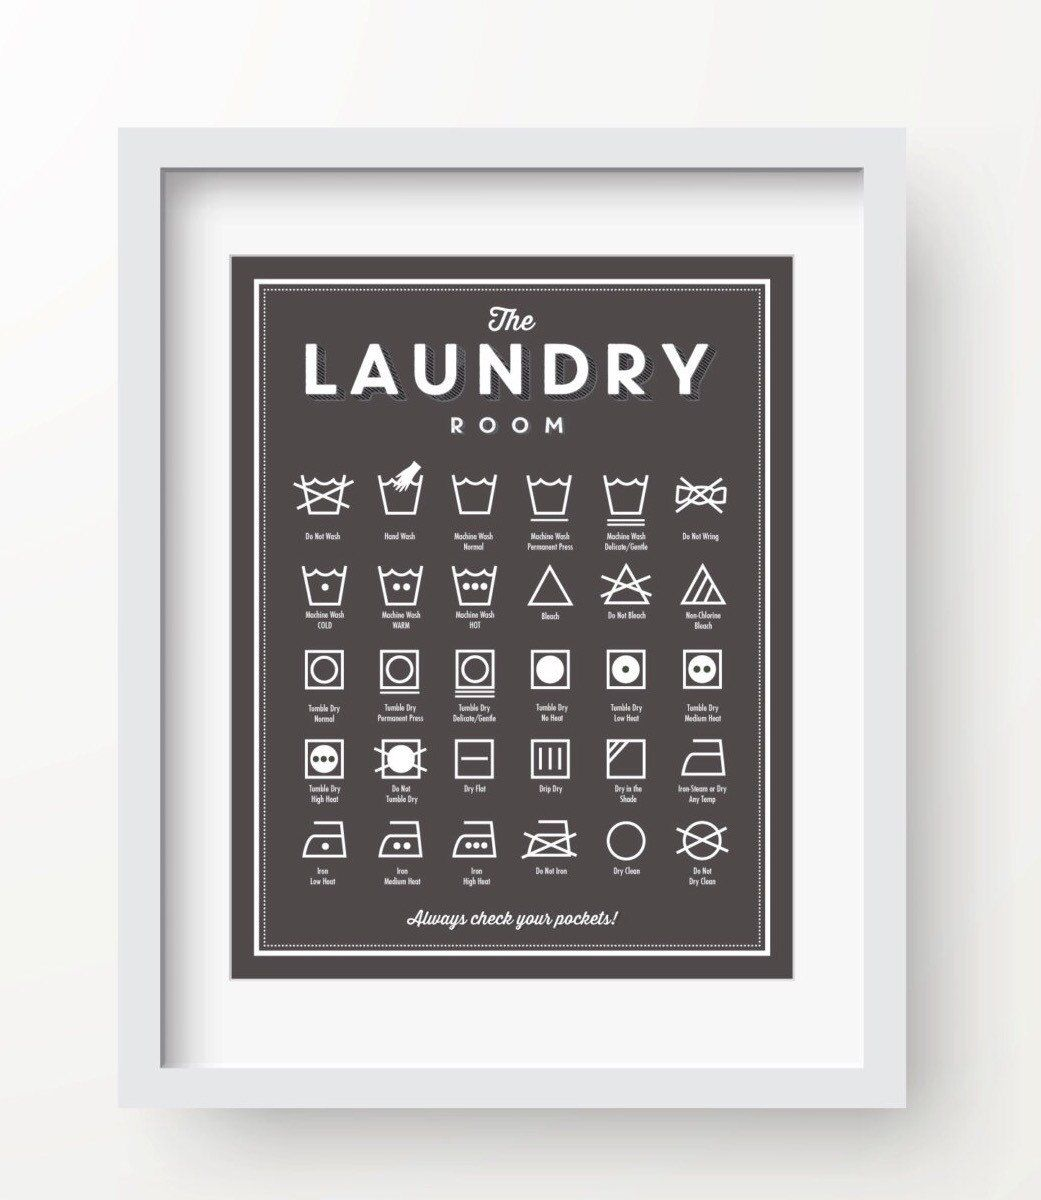 Laundry Room Decor Slate Color Laundry Wall Decor Laundry Guide